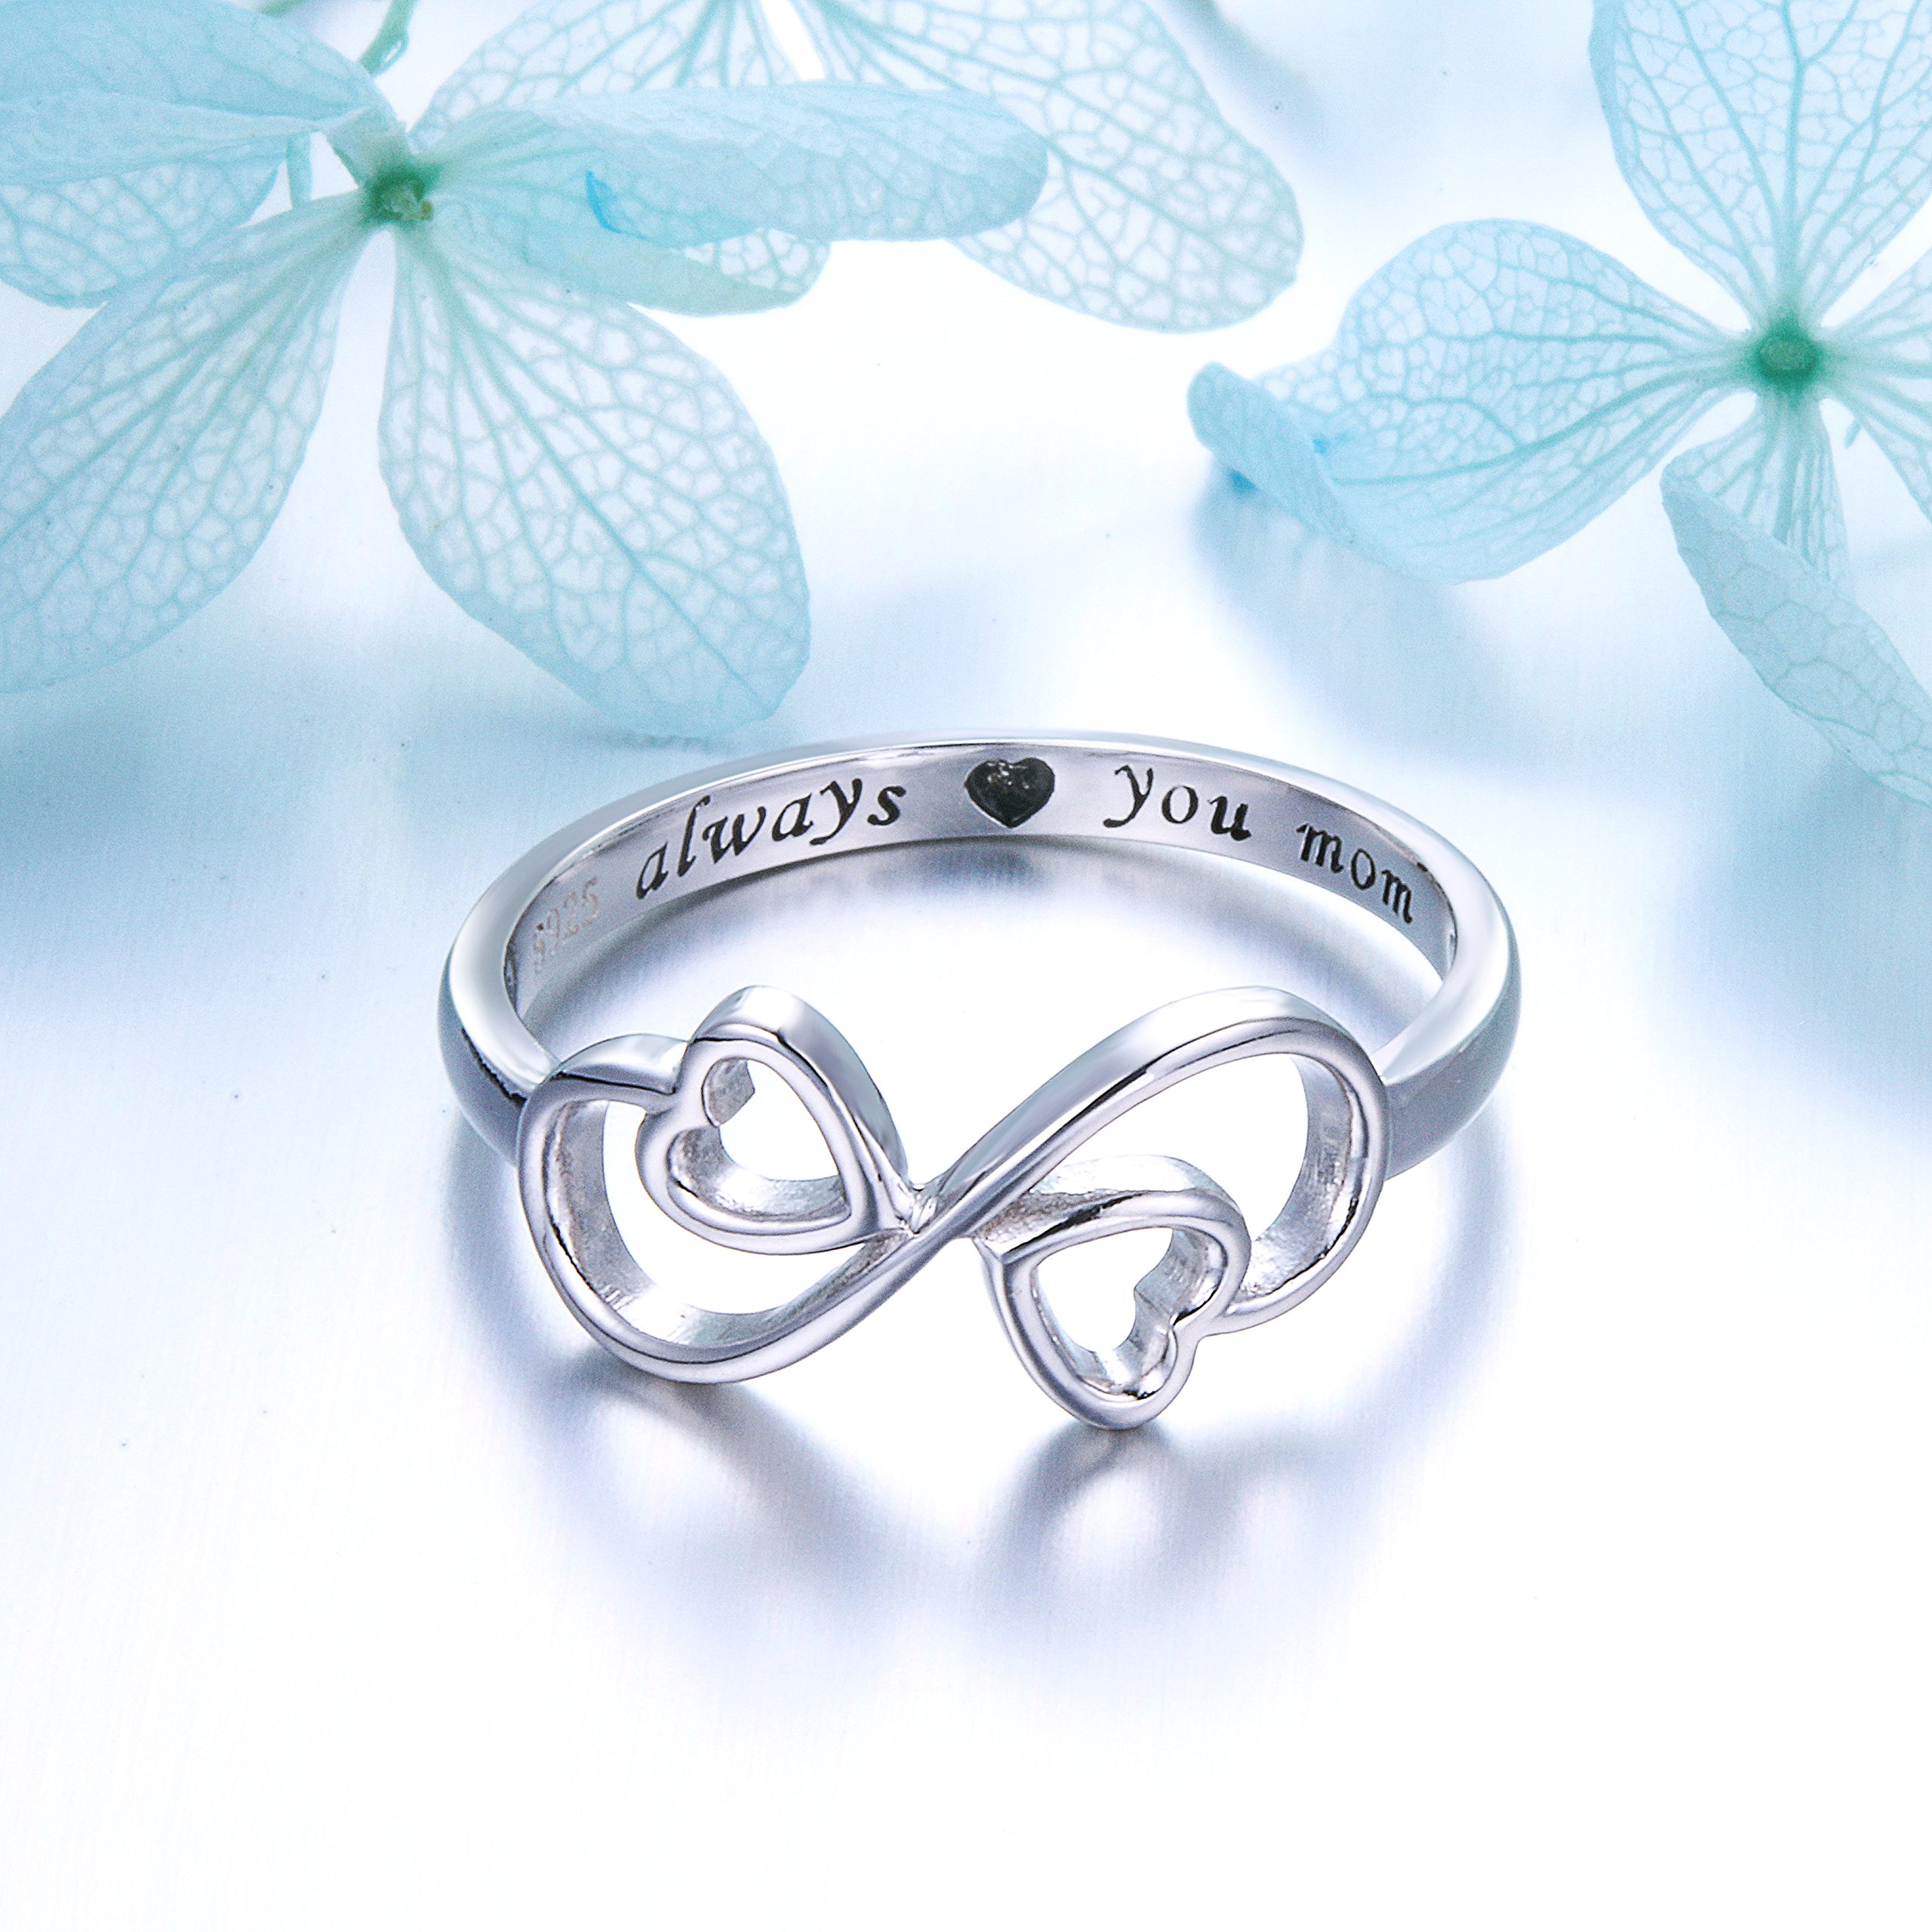 Flyow Sterling Silver Engraved Always Love You Mom Mother Daughter Forever Ring, Mother's Day Gift, Size 6-8 (7) by Flyow (Image #5)